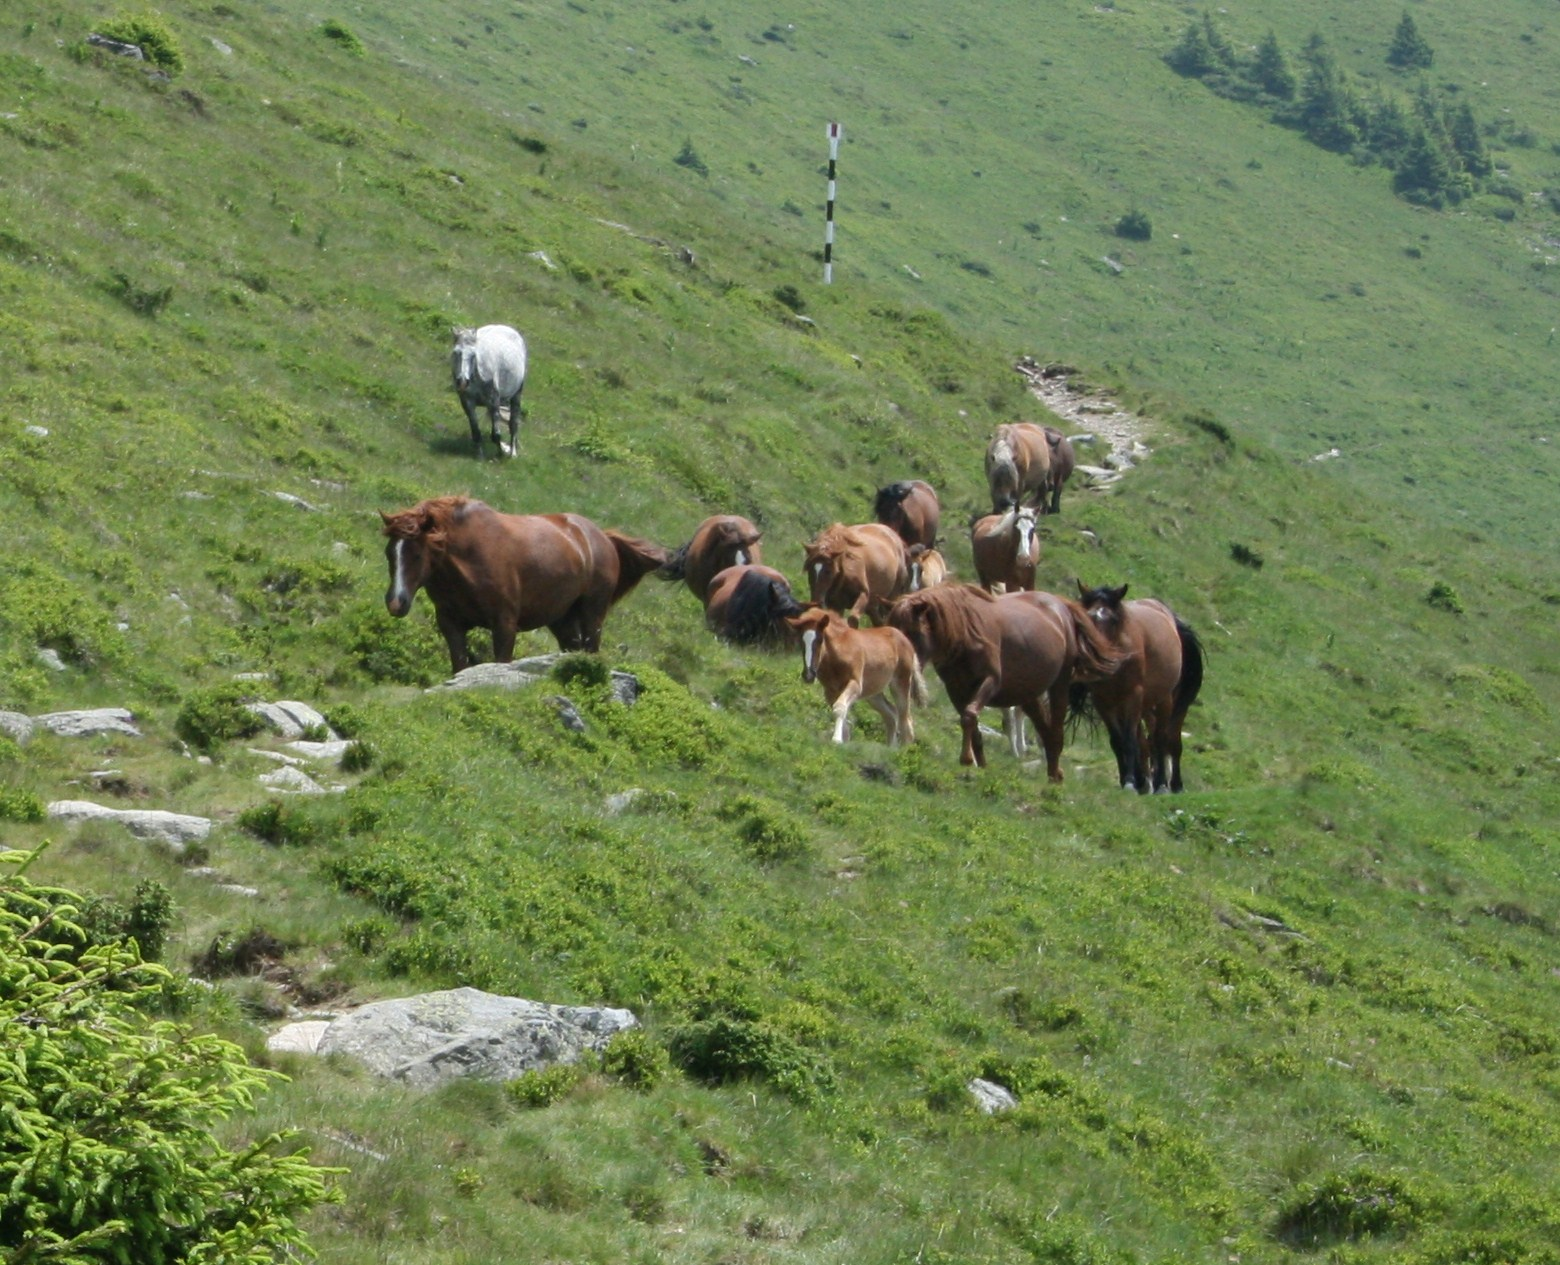 The impact of climate change on the pastoral communities of the Parang and Fagaras Mountains, Romania